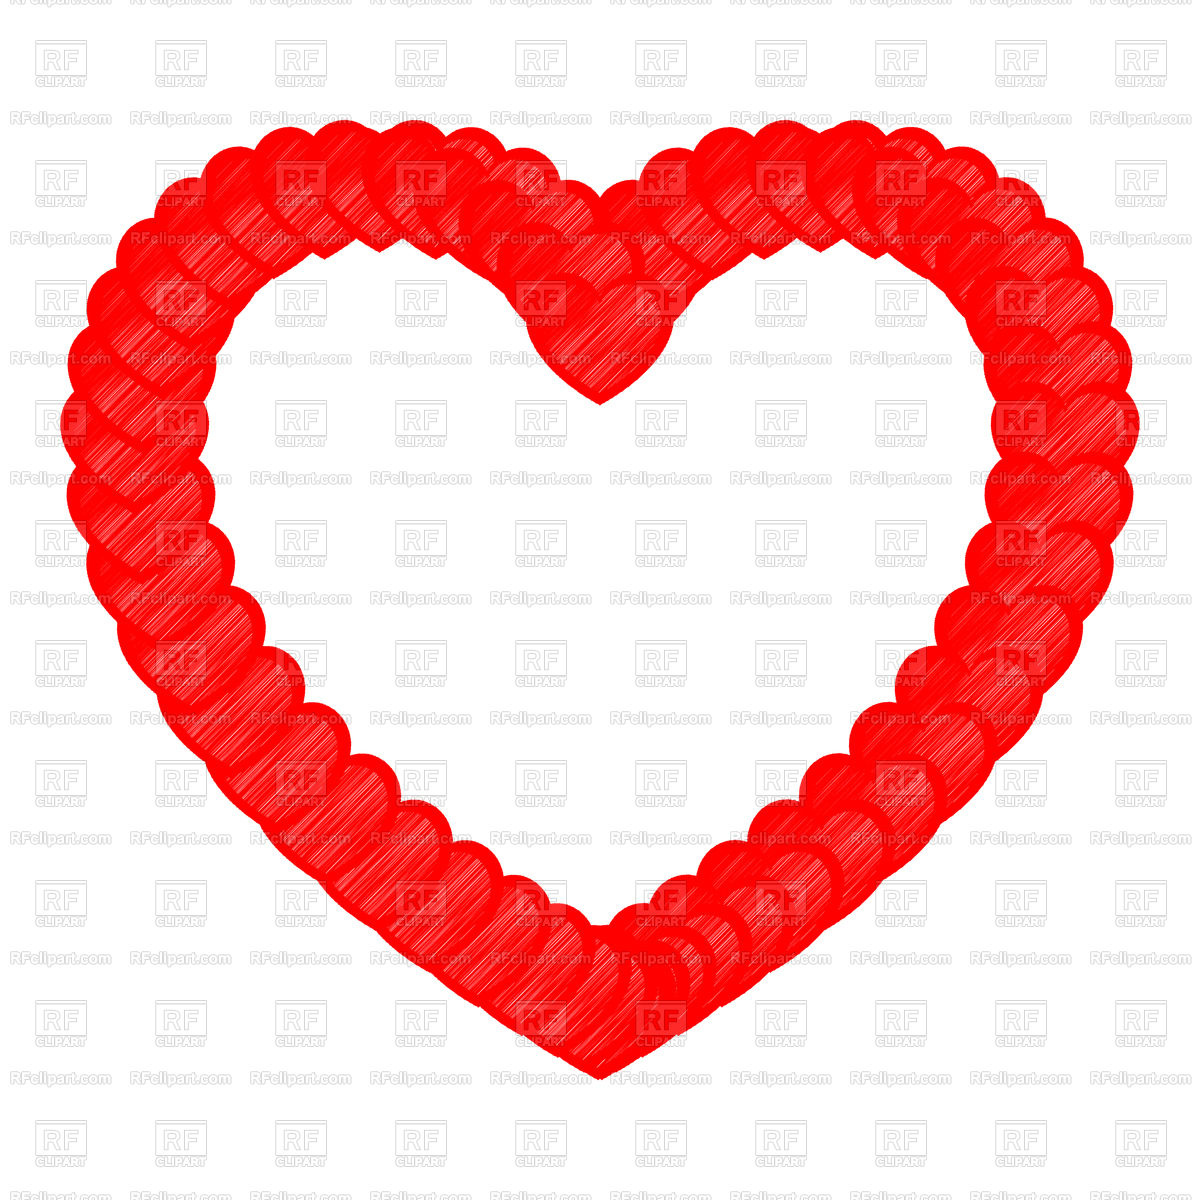 1200x1200 Heart Red Color With Small Hearts Art Style Royalty Free Vector